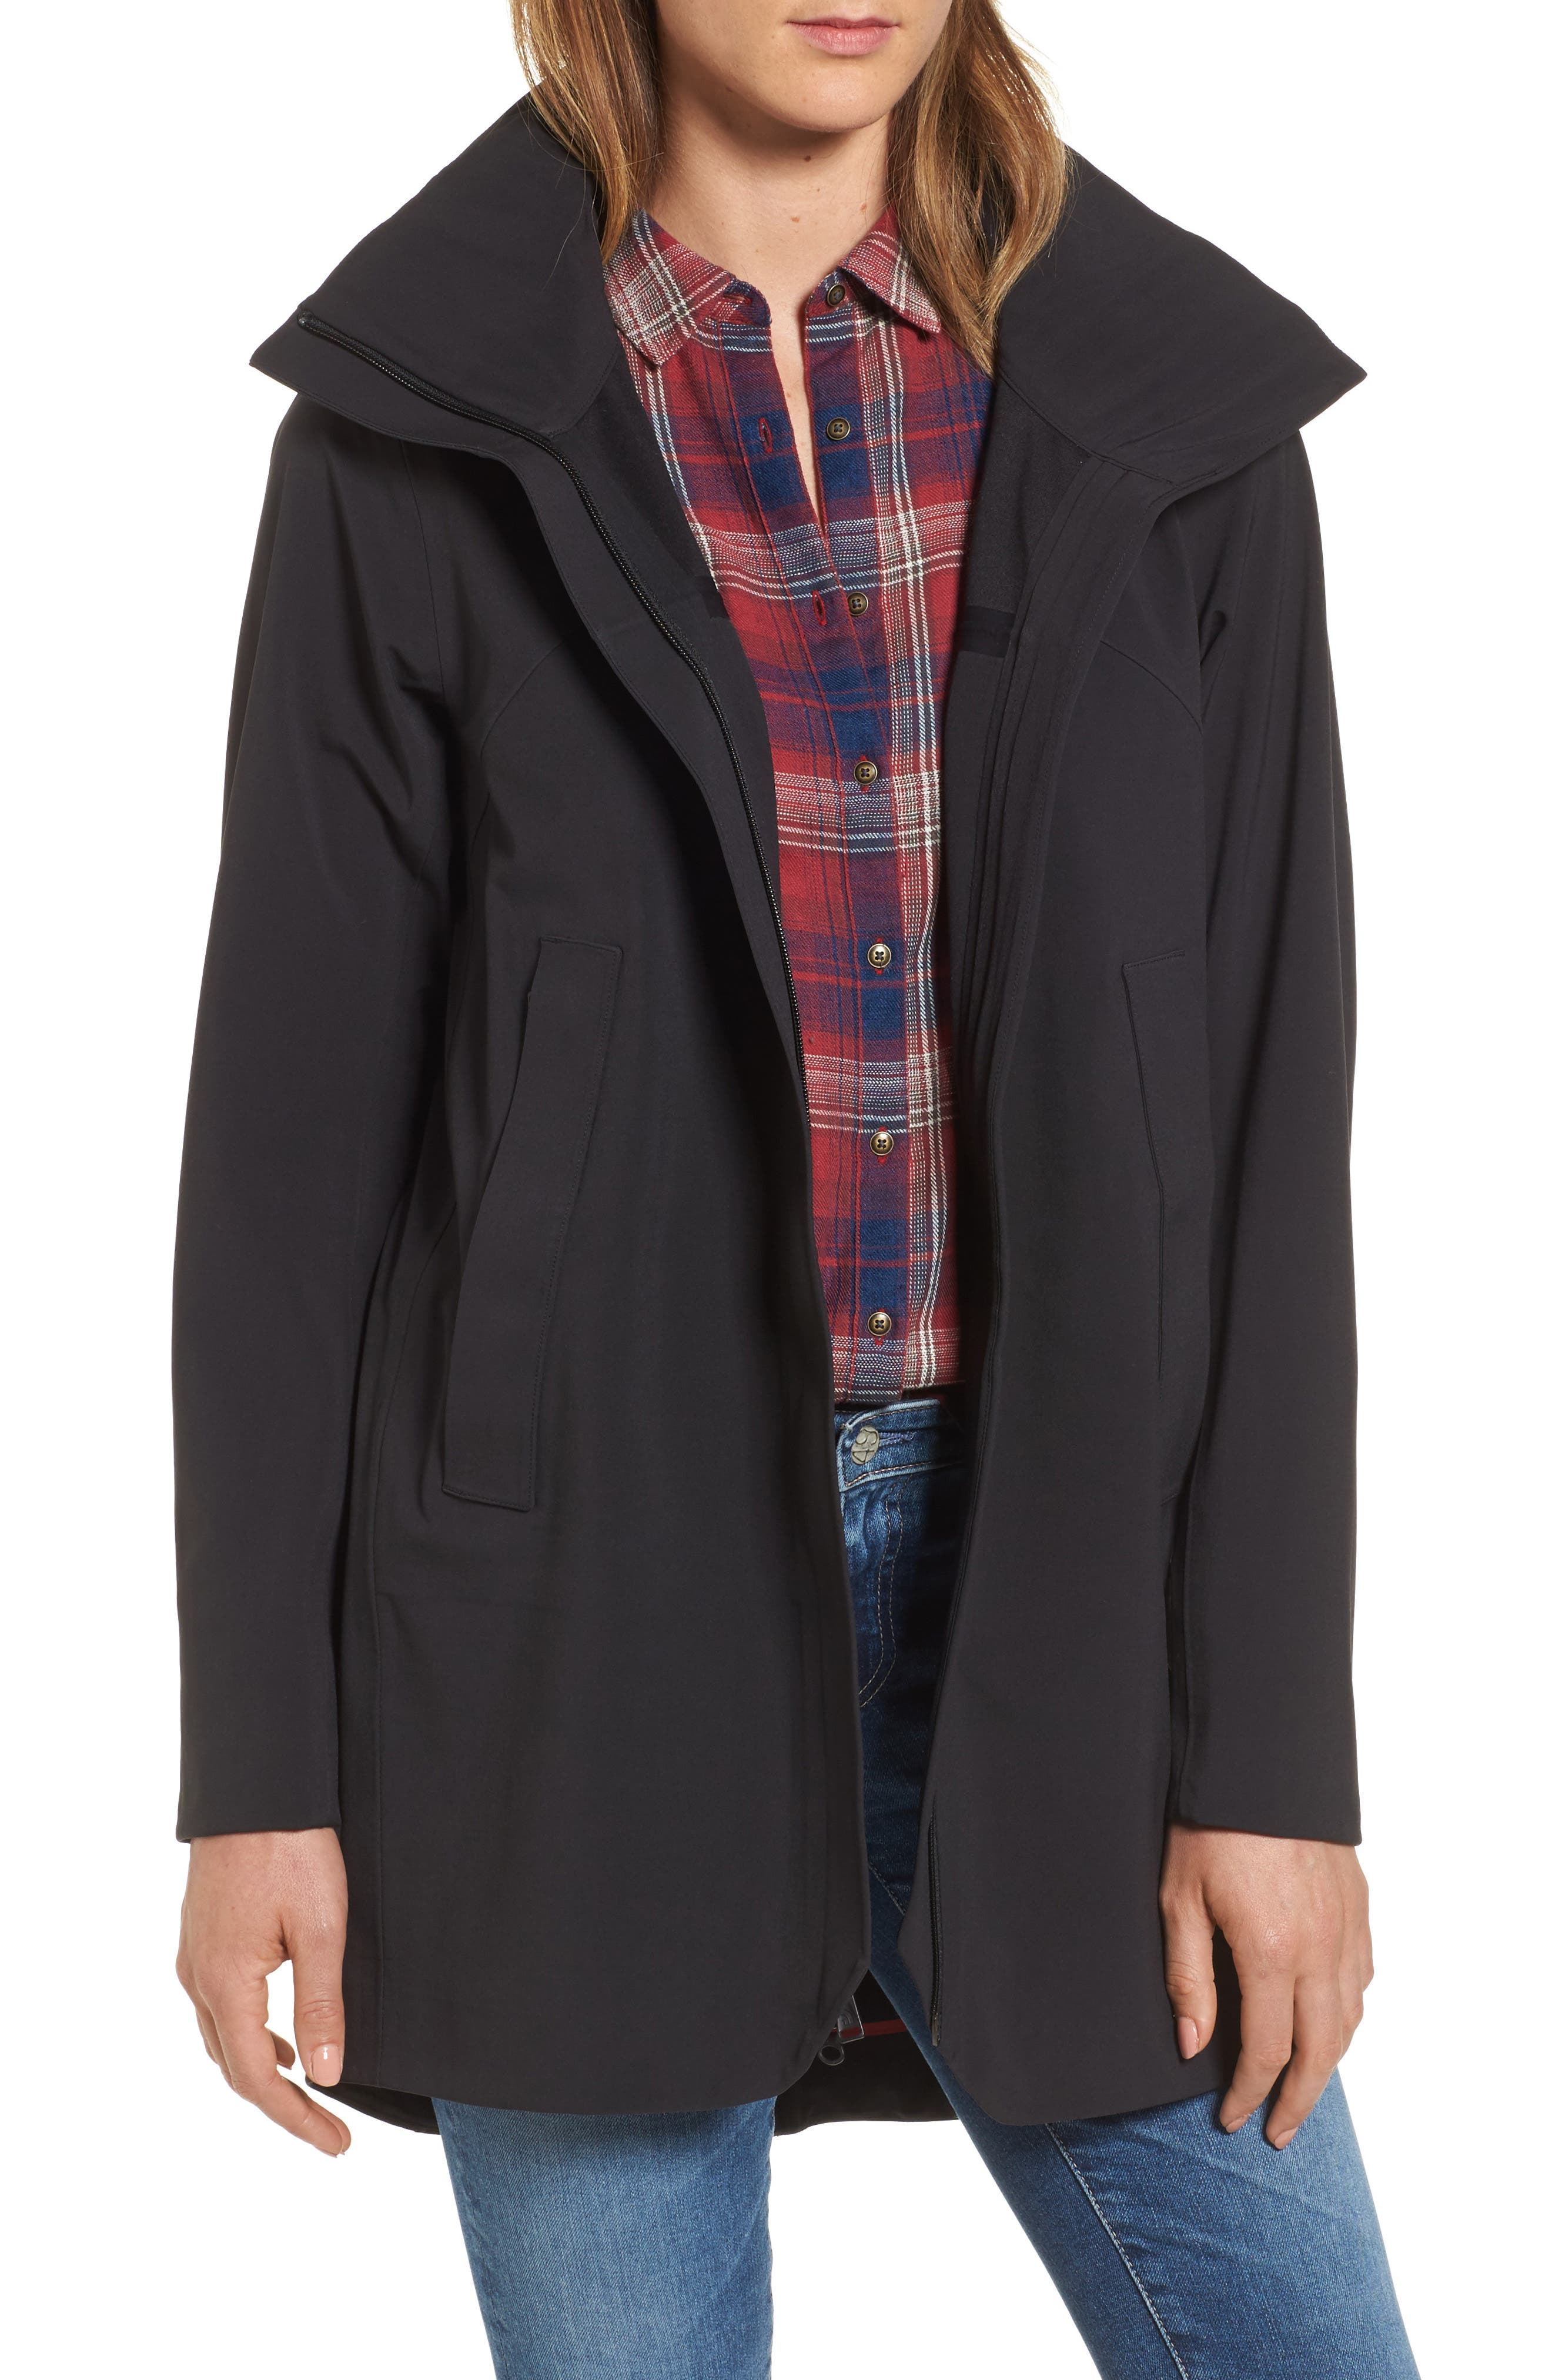 THE NORTH FACE, Apex Flex Gore-Tex<sup>®</sup> Trench Coat, Main thumbnail 1, color, BLACK